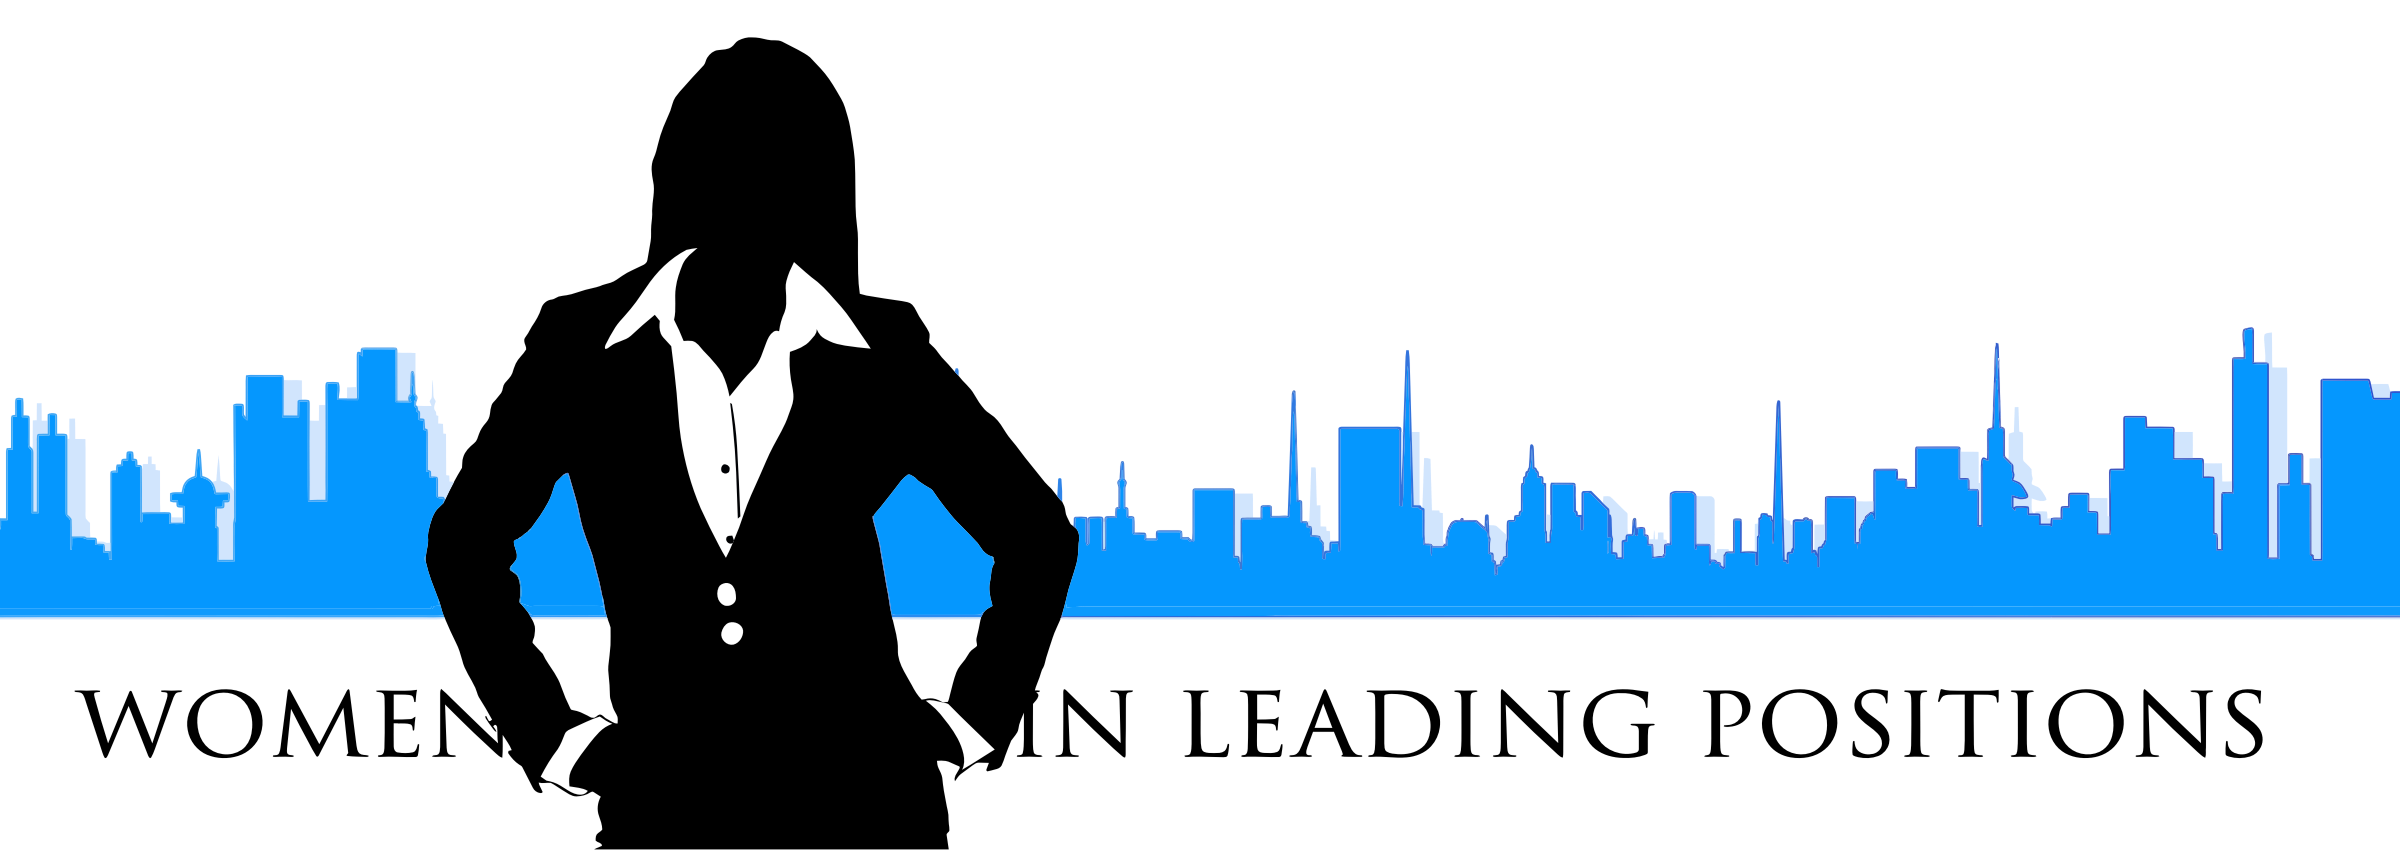 https://openclipart.org/image/2400px/svg_to_png/221307/Businesswoman.png